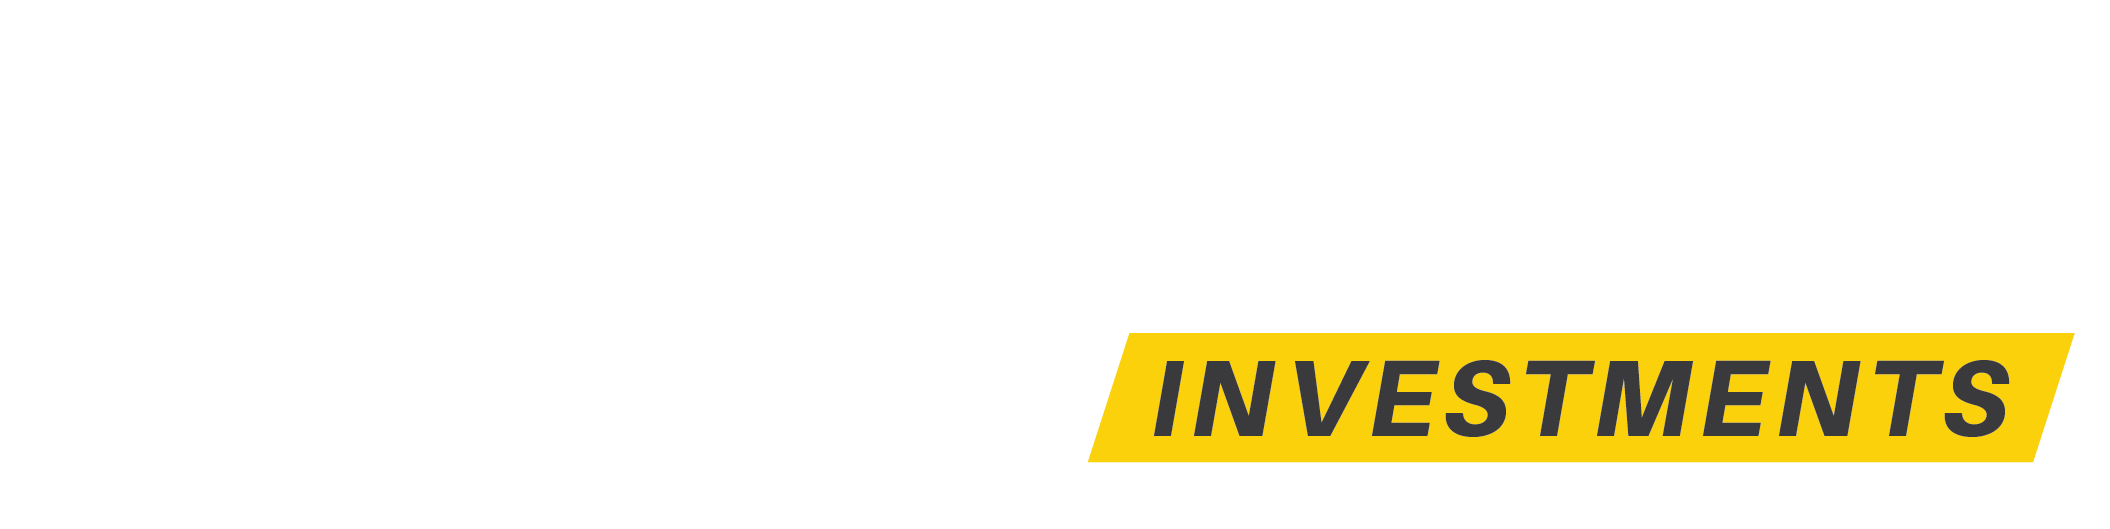 Casa Campus Investments logo b.png